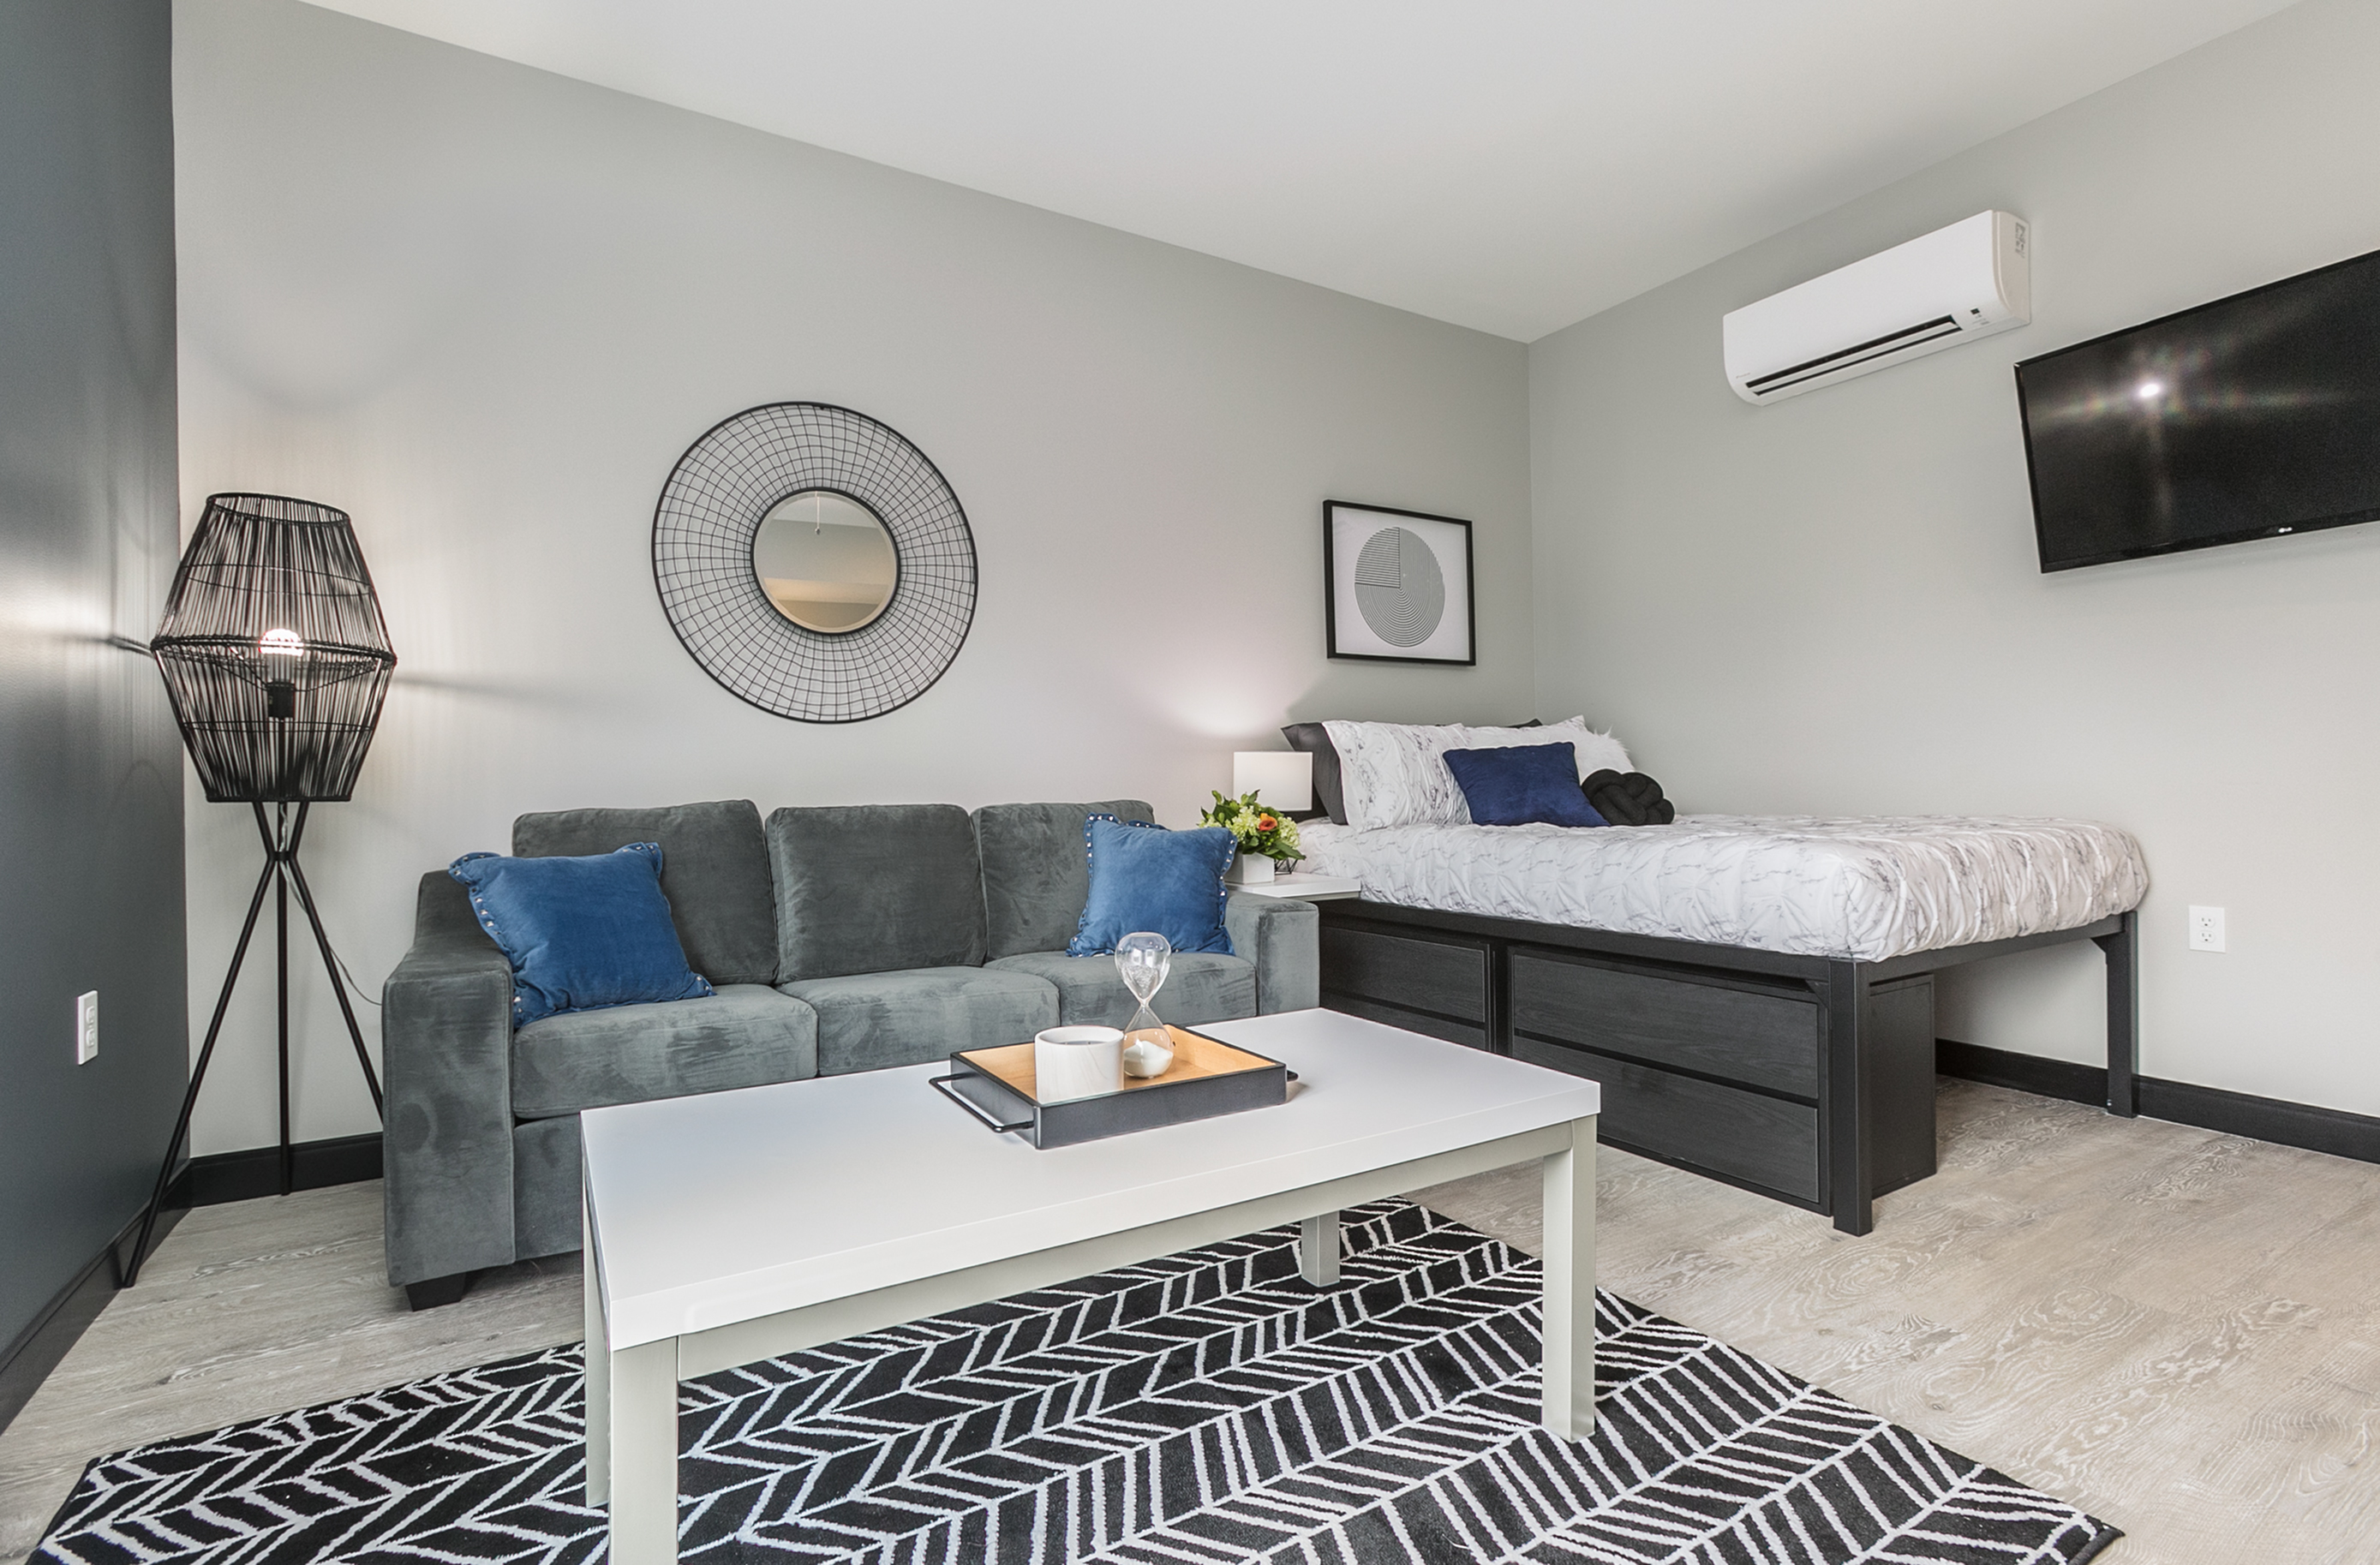 studio apartment with grey couch, bed with white bedspread and a coffee table